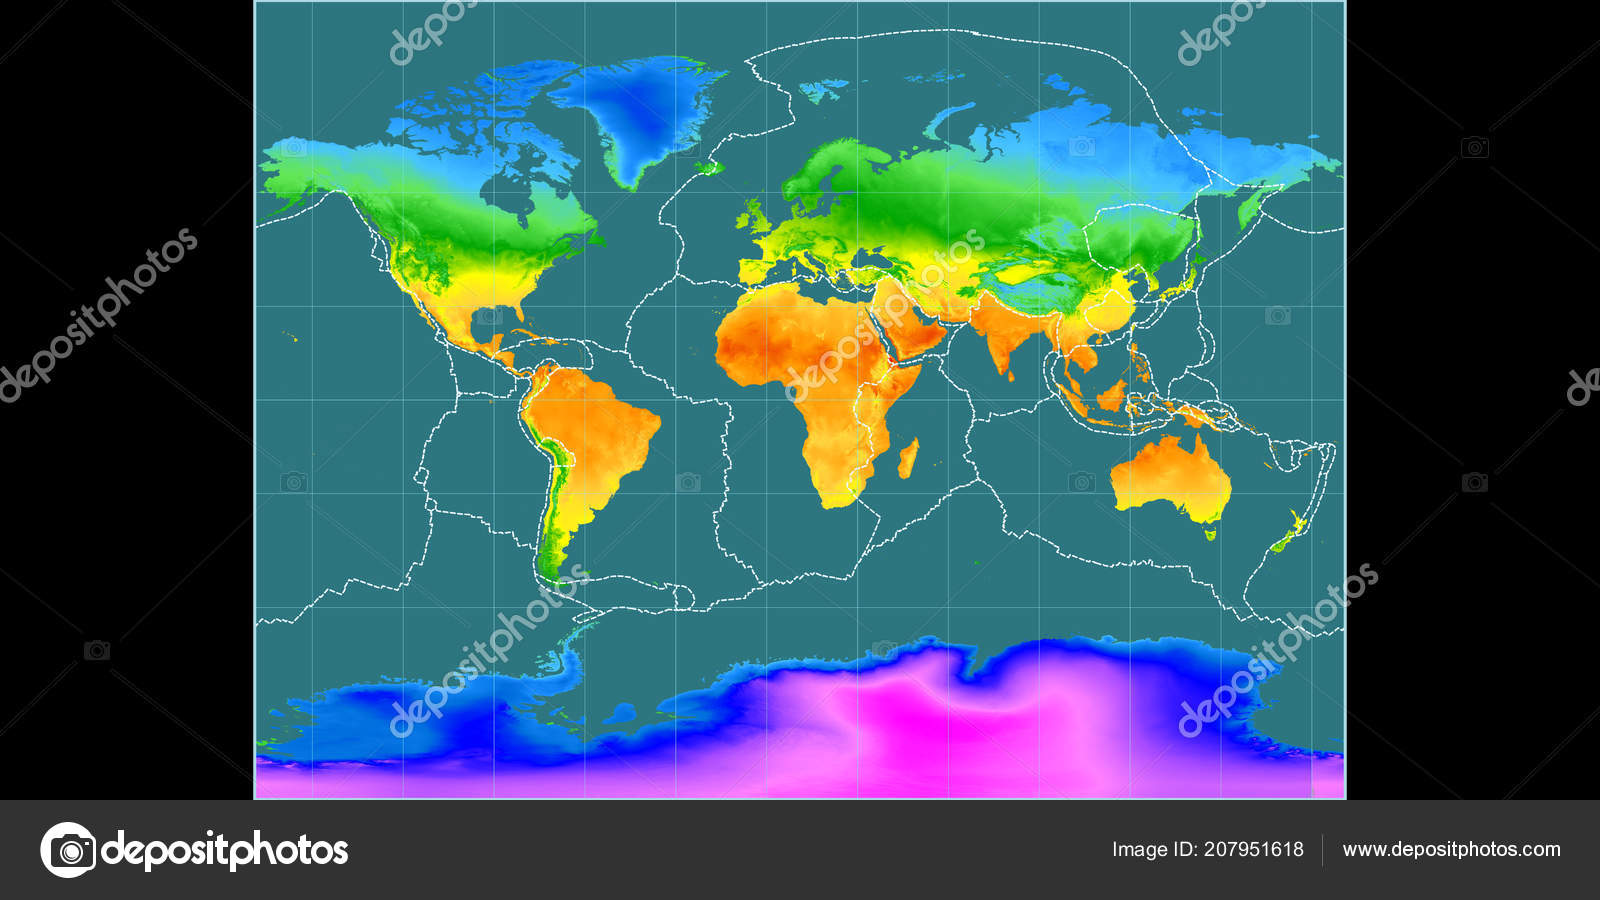 World map miller cylindrical projection centered east longitude mean world map in the miller cylindrical projection centered on 11 east longitude mean annual temperature map composite of raster with graticule and tectonic freerunsca Images